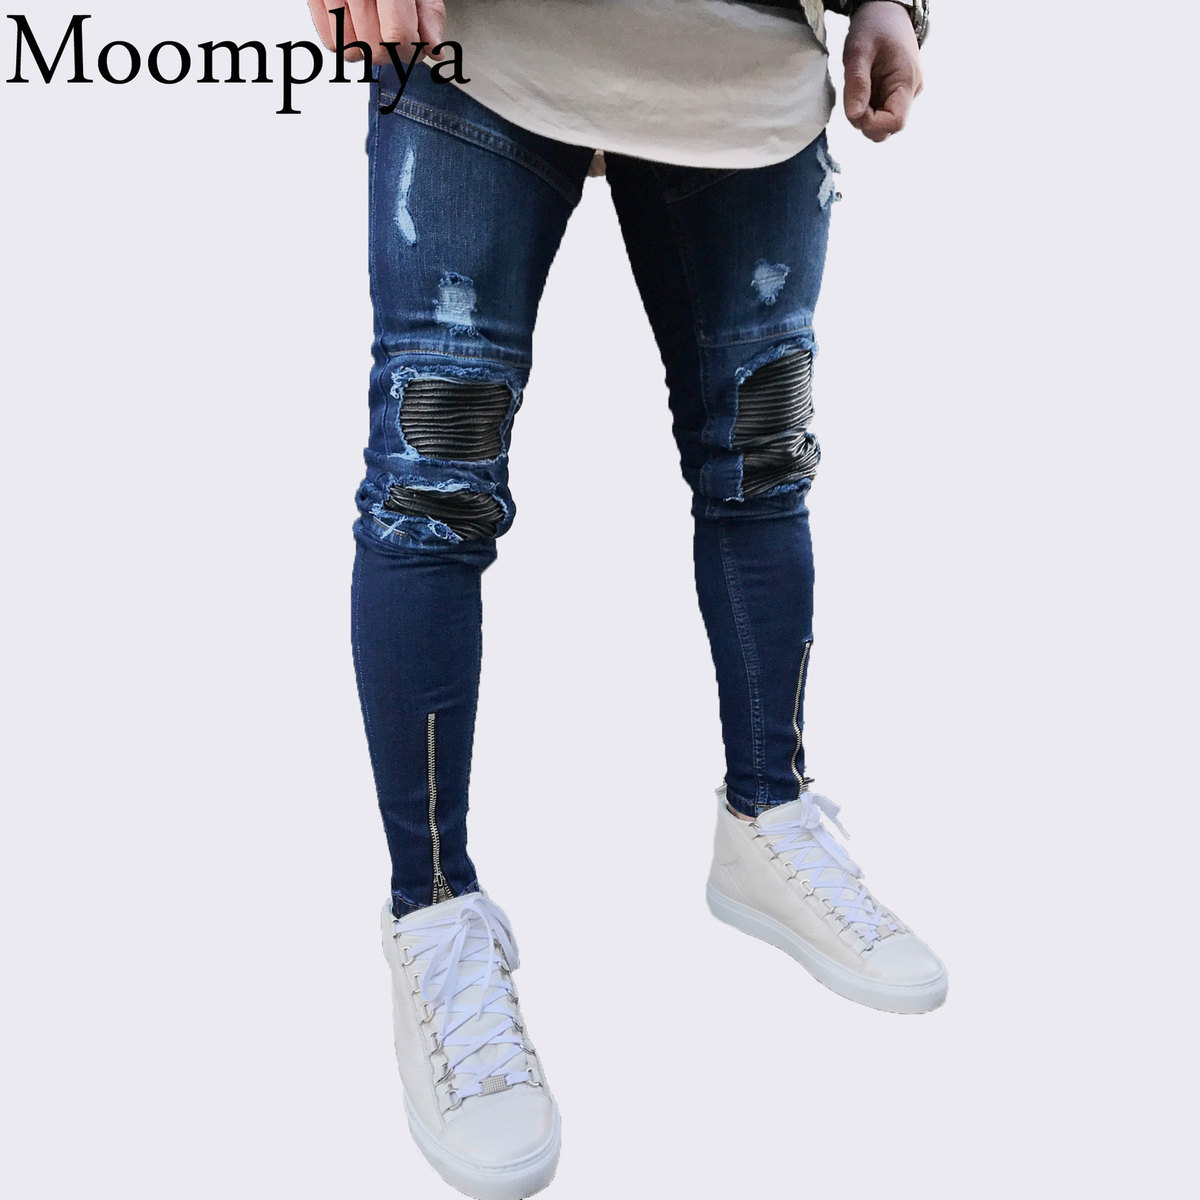 Aliexpress.com  Buy Moomphya 2018 New Brand Design Men zipper jeans Pleated patchwork Slim Fit ...